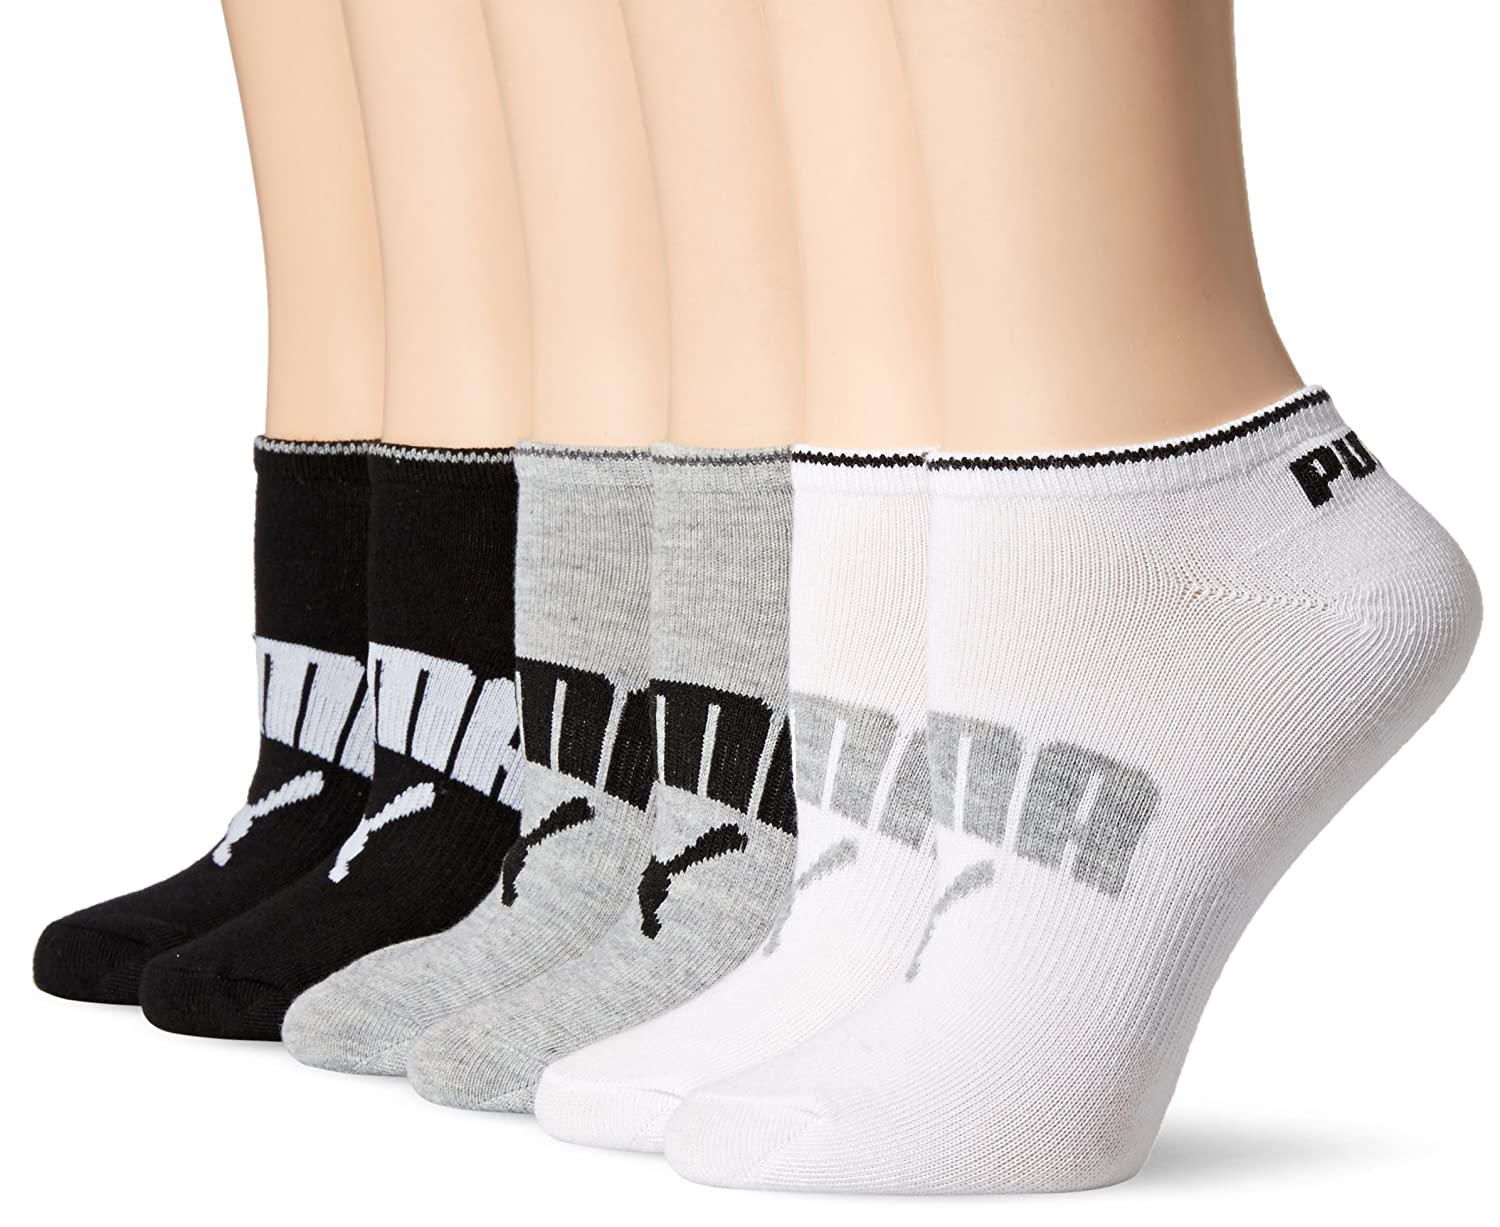 PUMA womens Athletic Low Cut Running Sock With Arch Support 6-pack White/Grey/Black 9-11 Puma Women' s Socks P105431